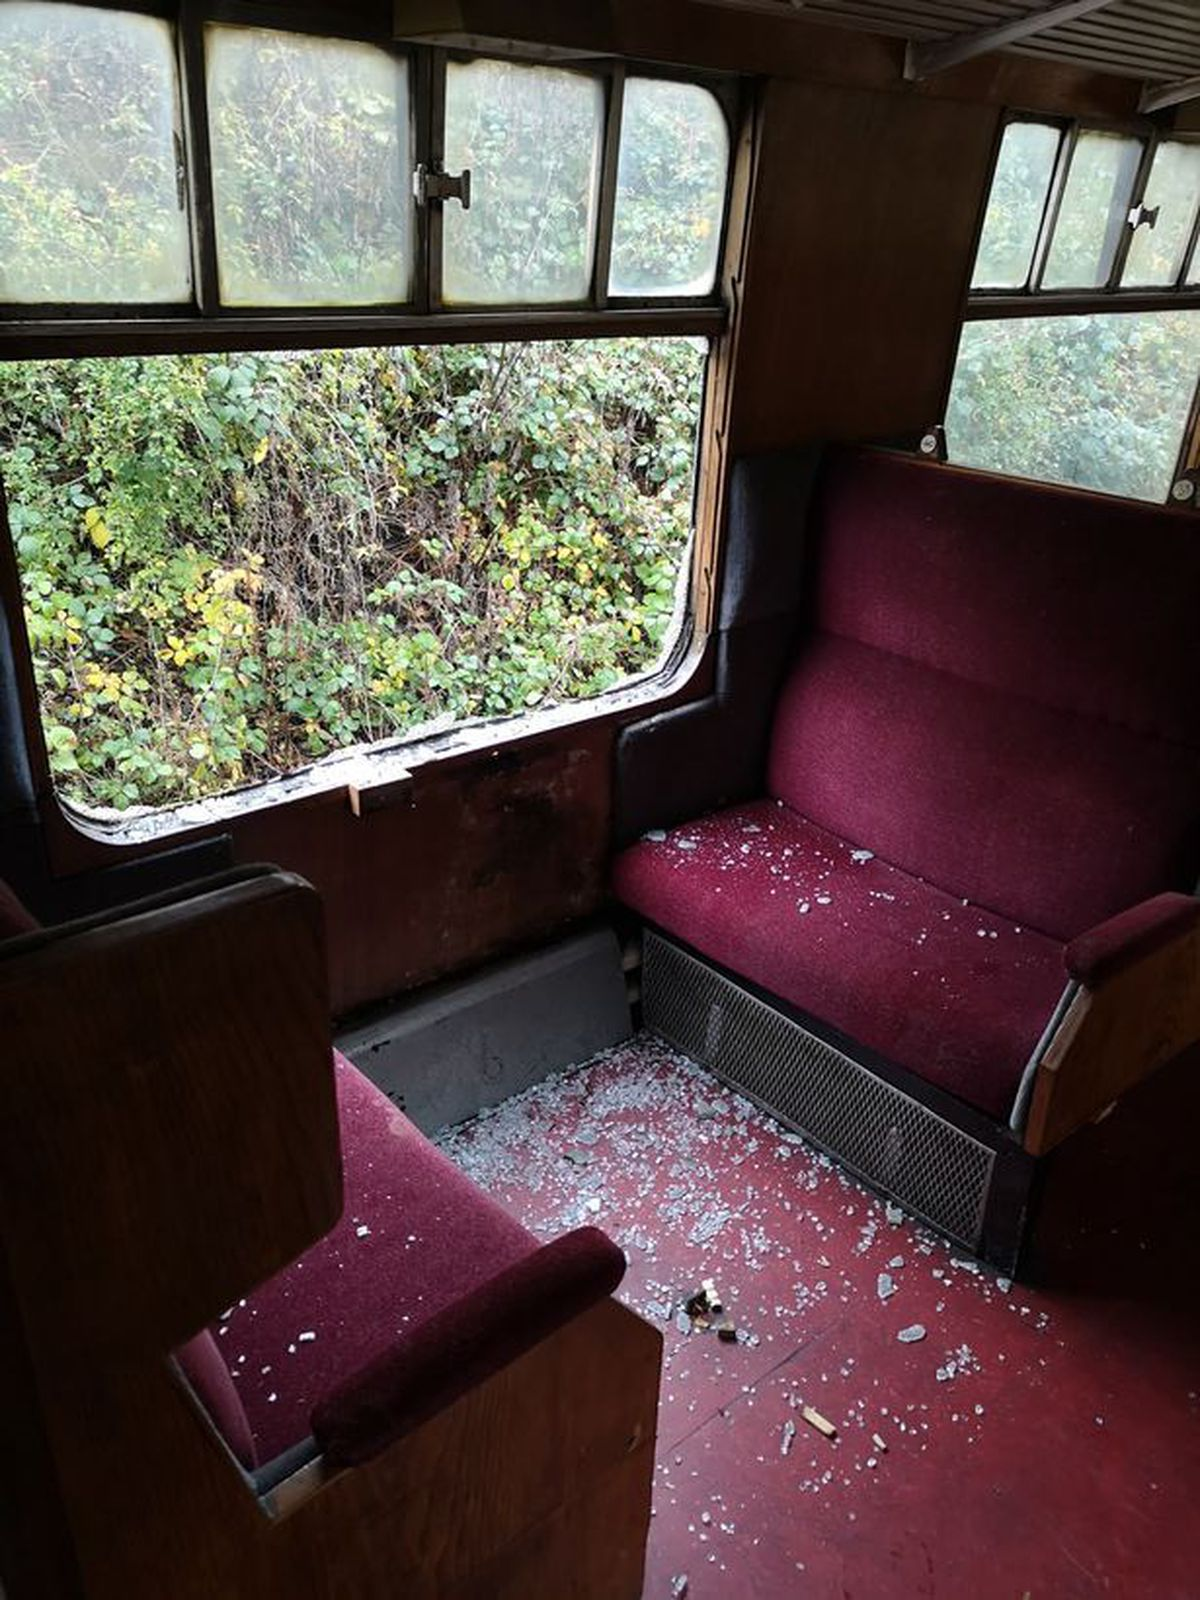 One of the damaged carriages. Picture: Llangollen Heritage Railway